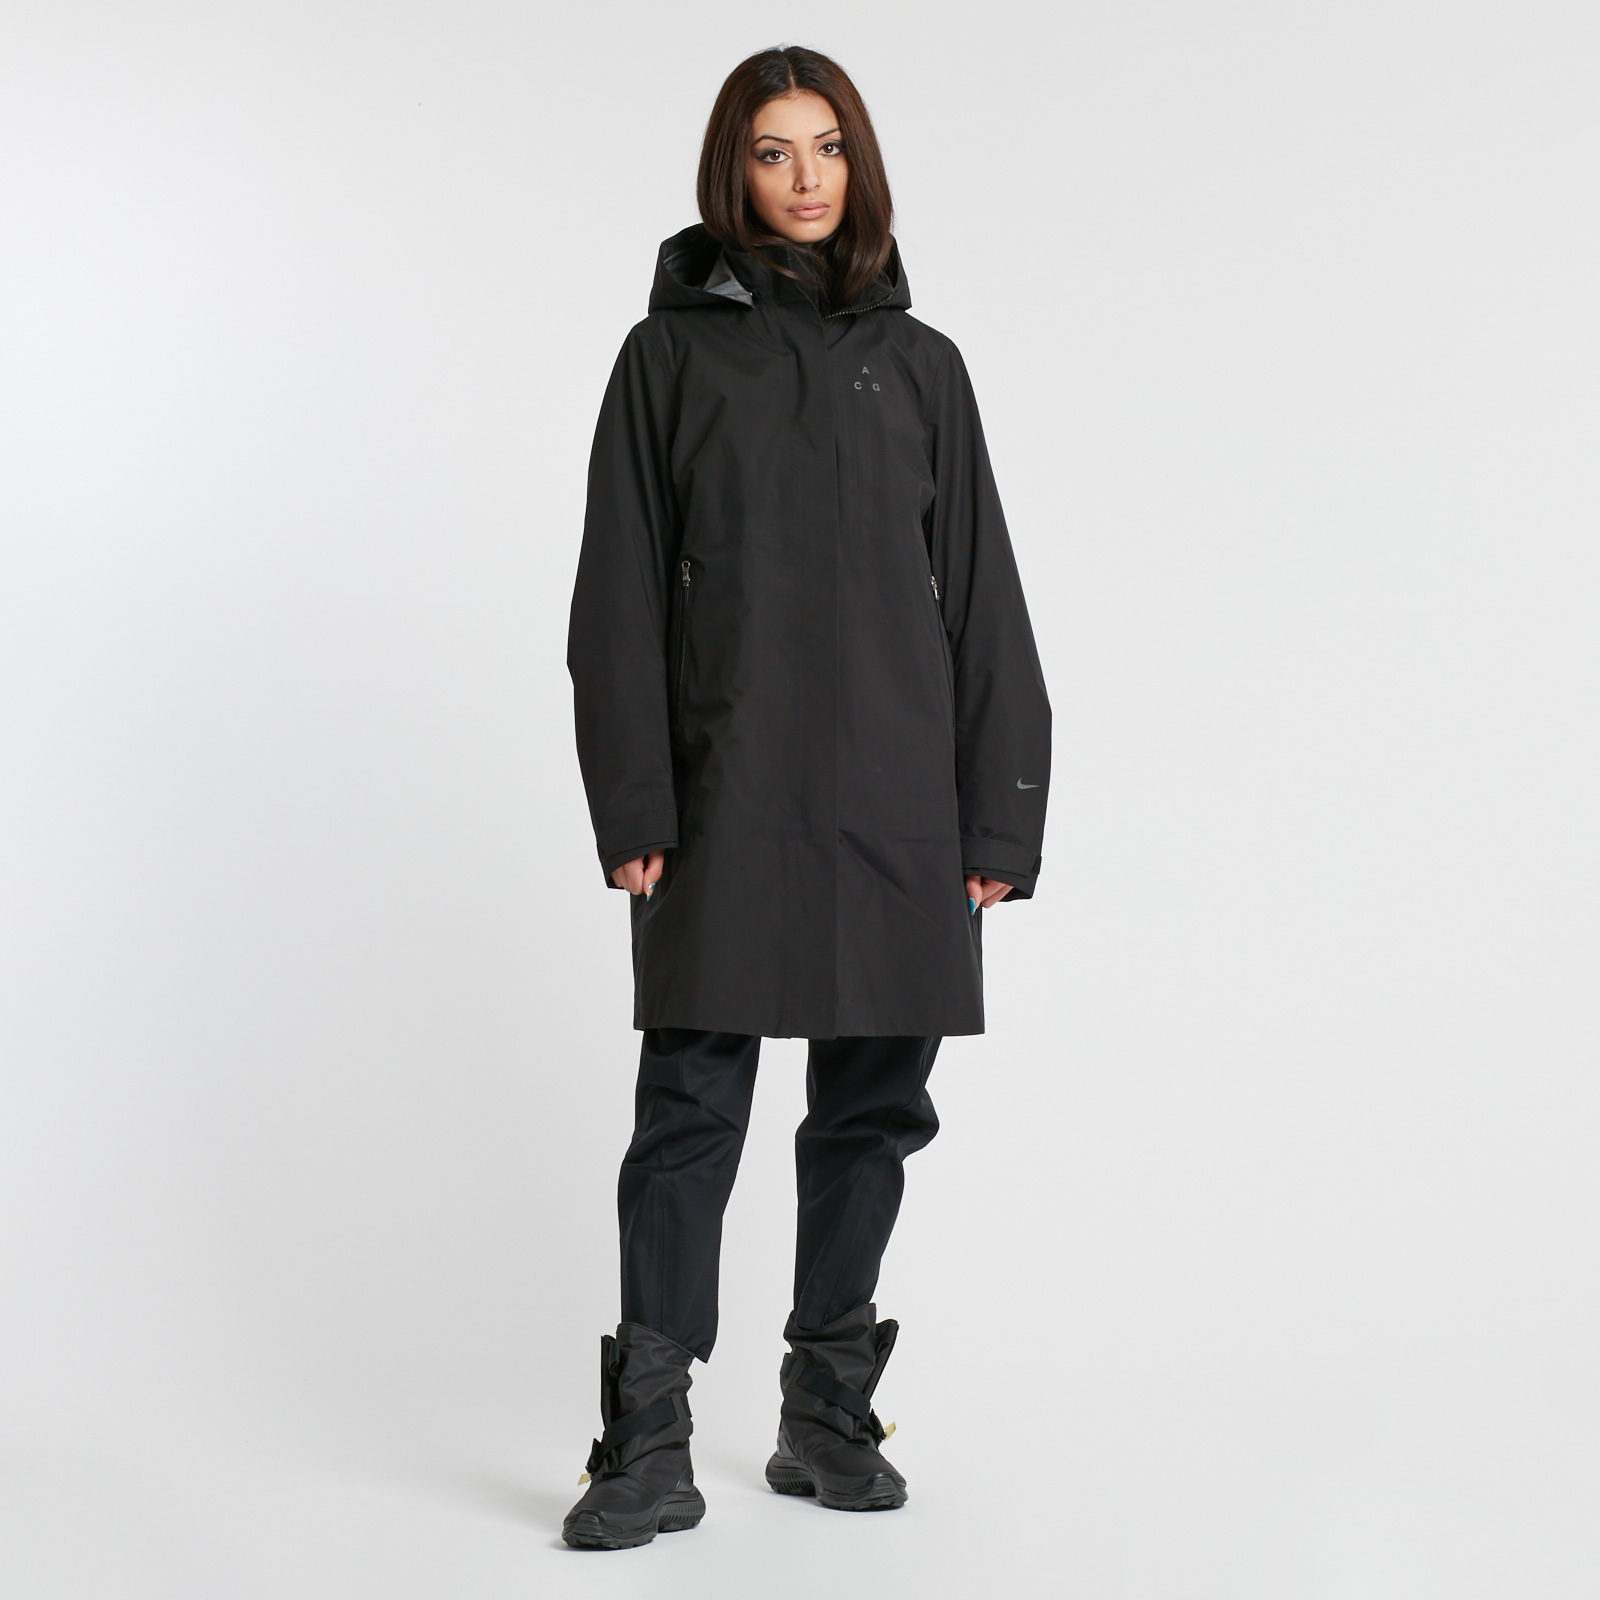 Nike W ACG 3In1 System Coat 906104 010 Sneakersnstuff I